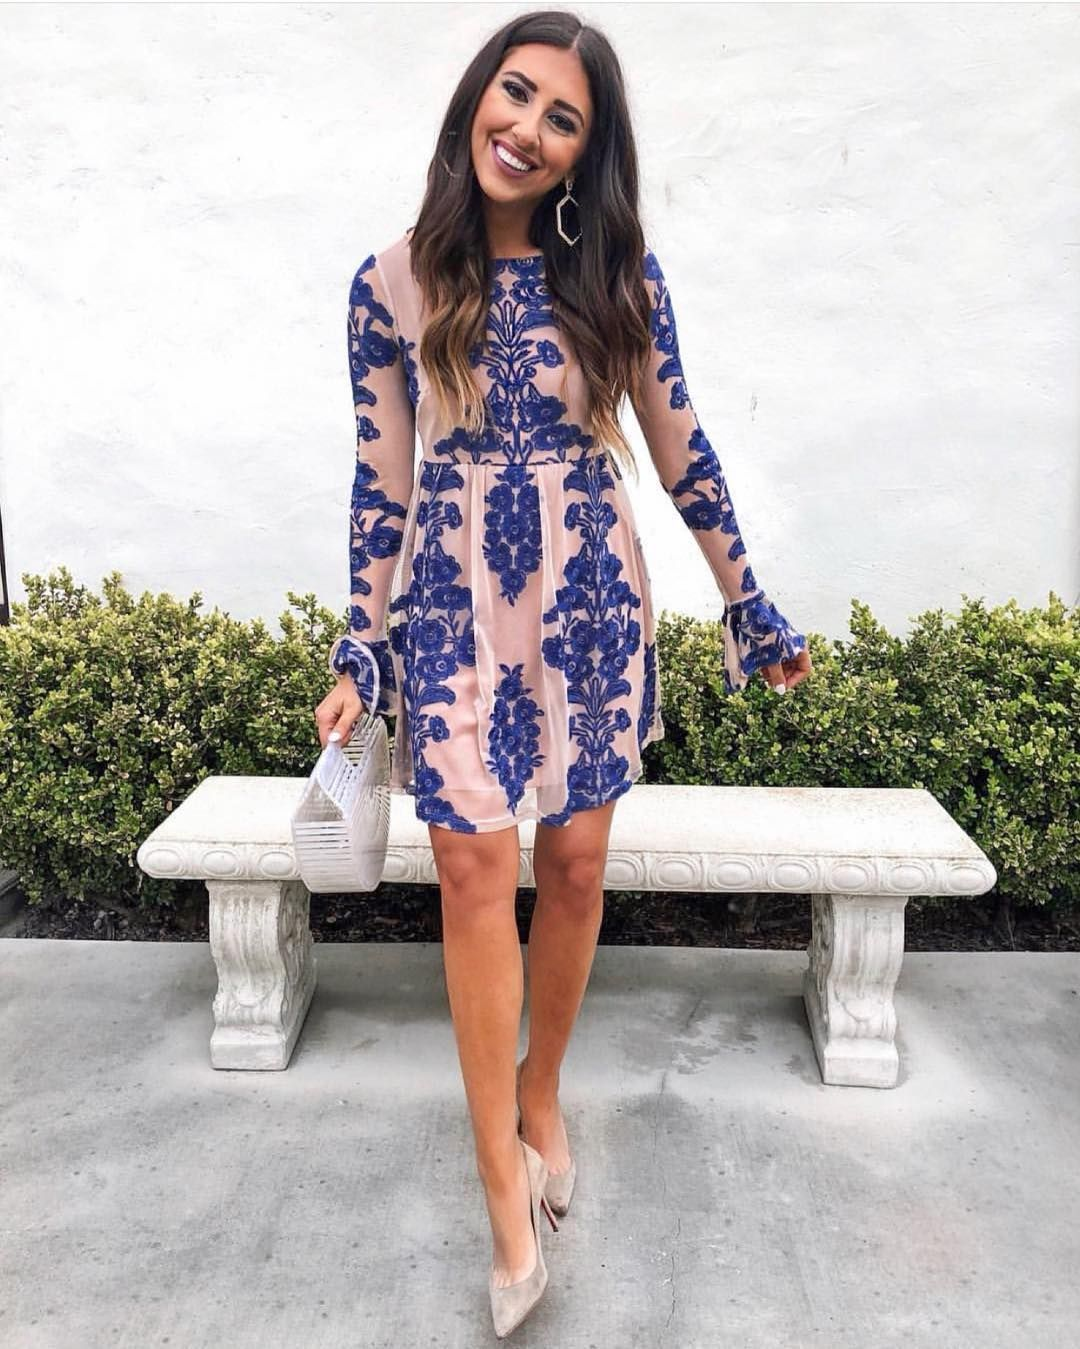 What To Wear To A Wedding That Is Also Instagram Ready Wedding Guest Outfit Spring Wedding Guest Dress Summer Wedding Guest Outfit Summer [ 1349 x 1080 Pixel ]